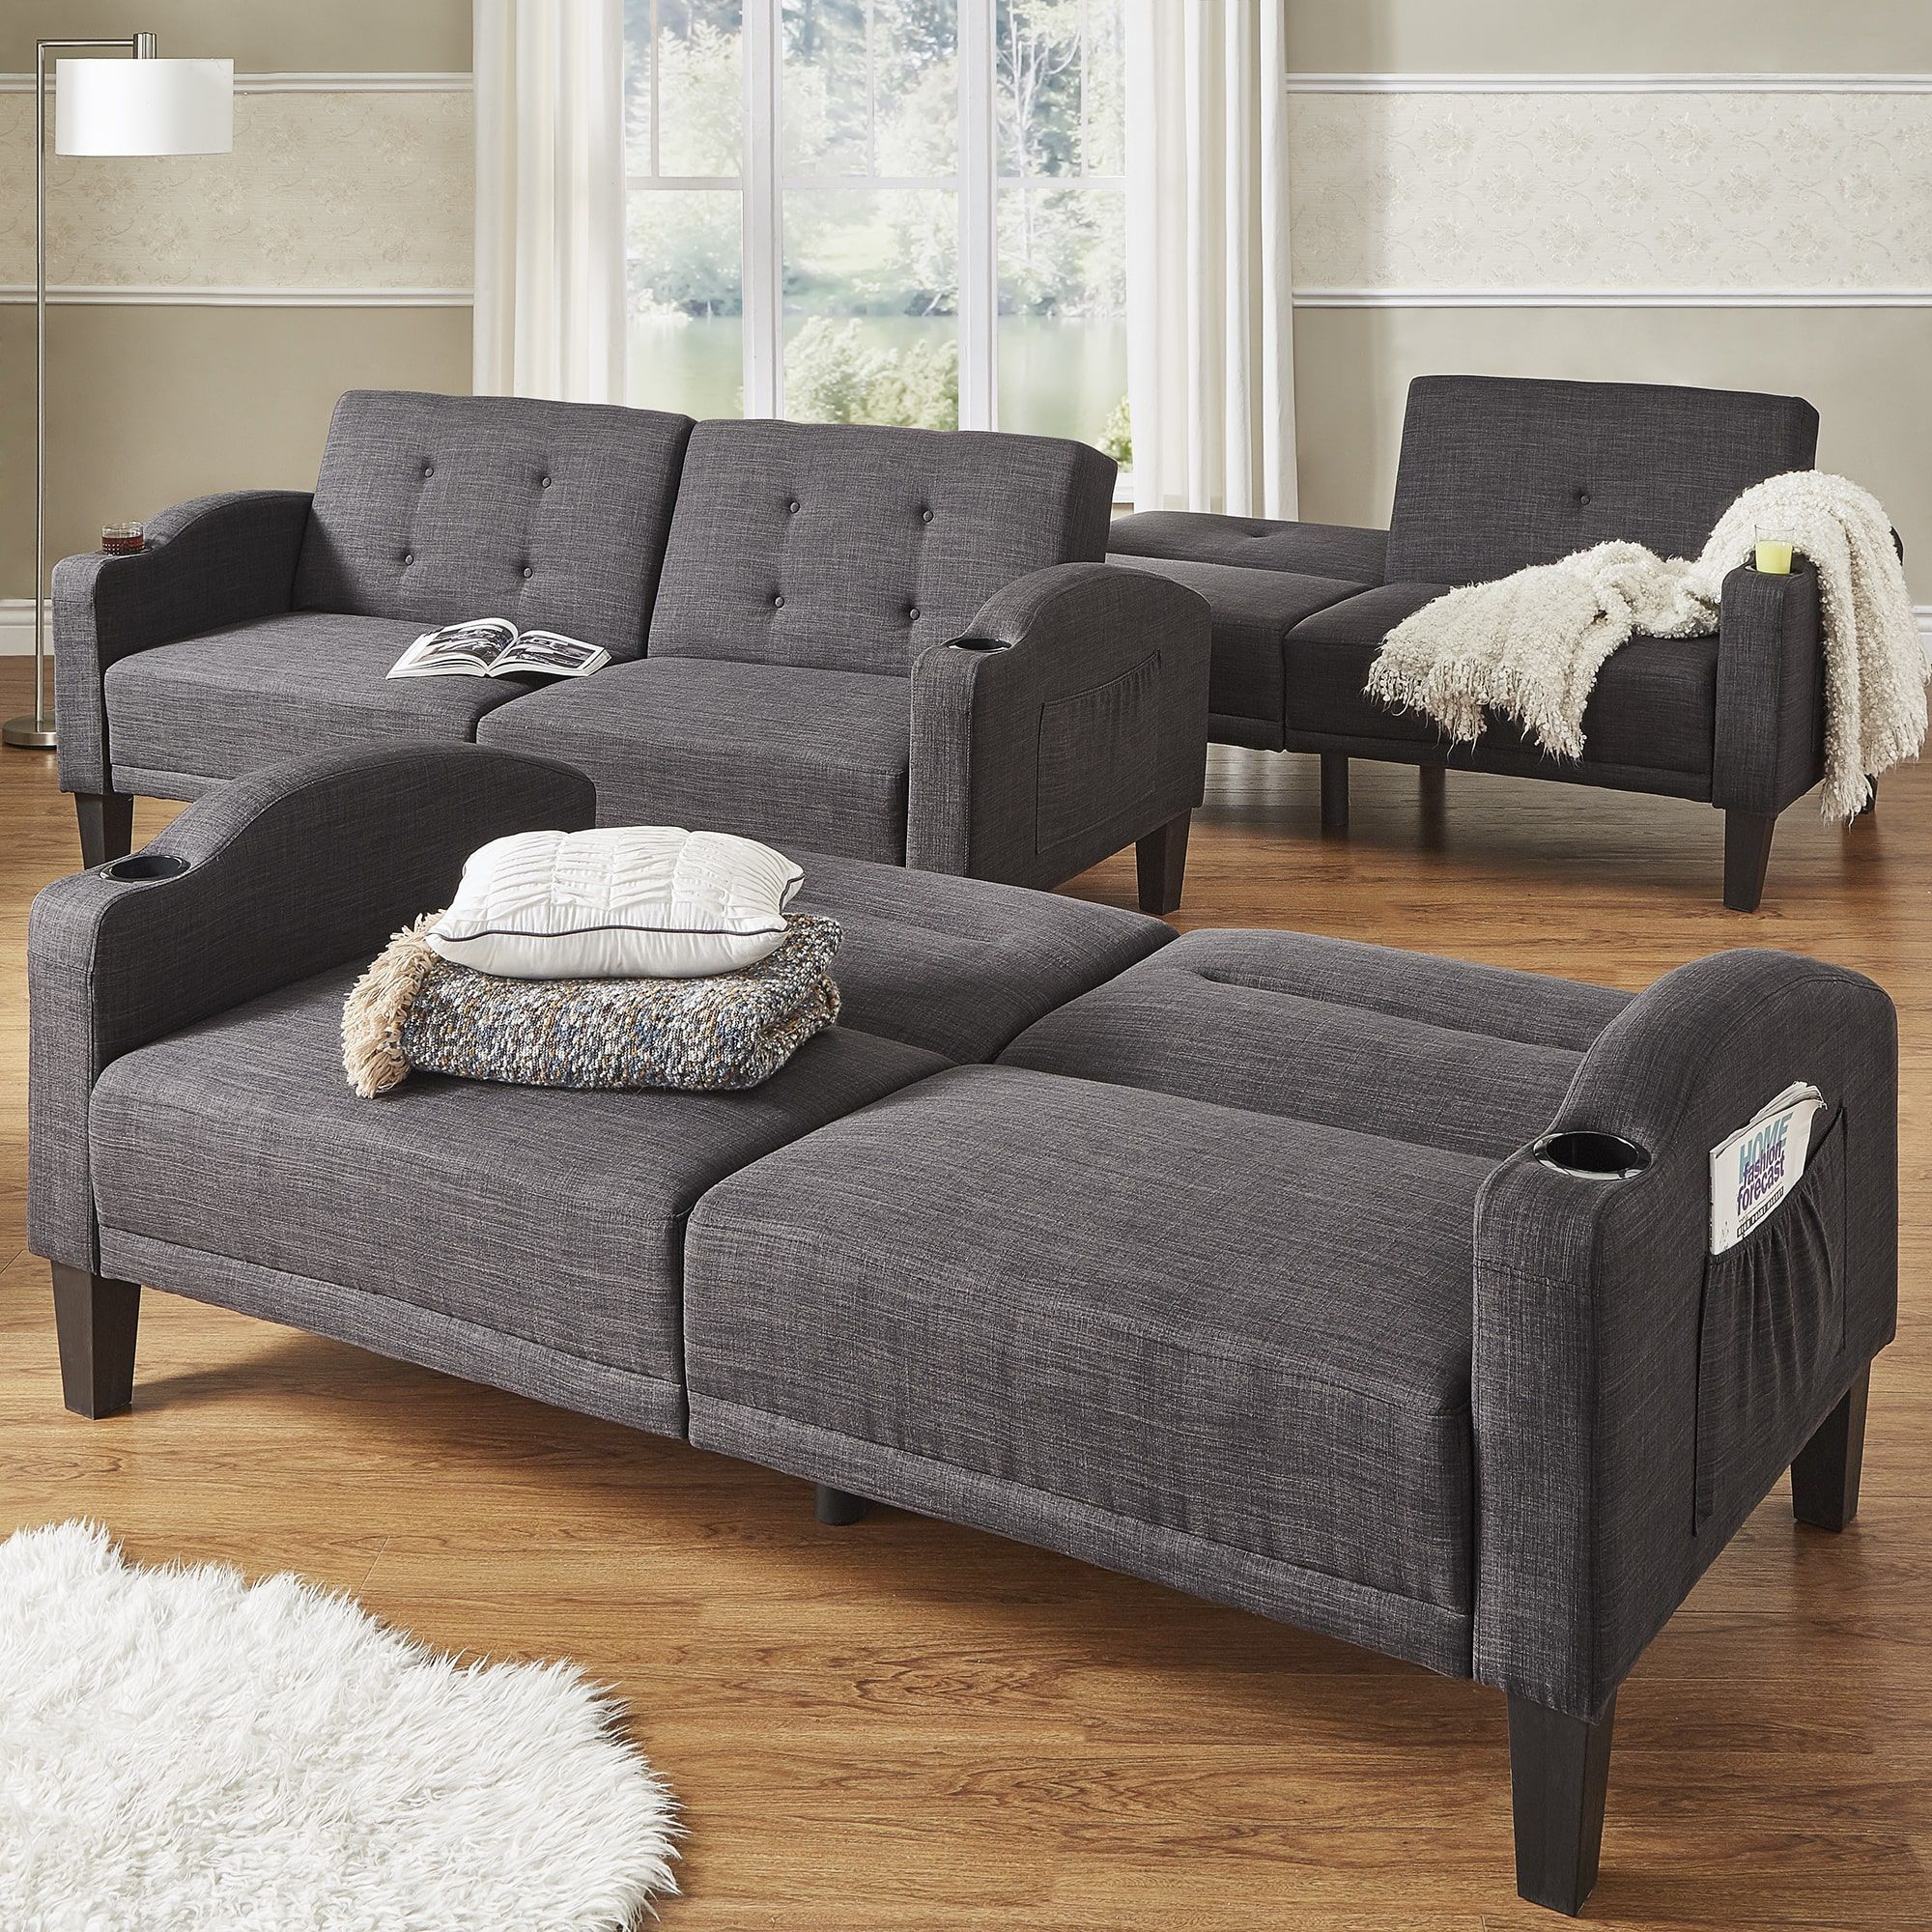 Dominic Dark Grey Linen Cup Holder Futon Sofa iNSPIRE Q Modern